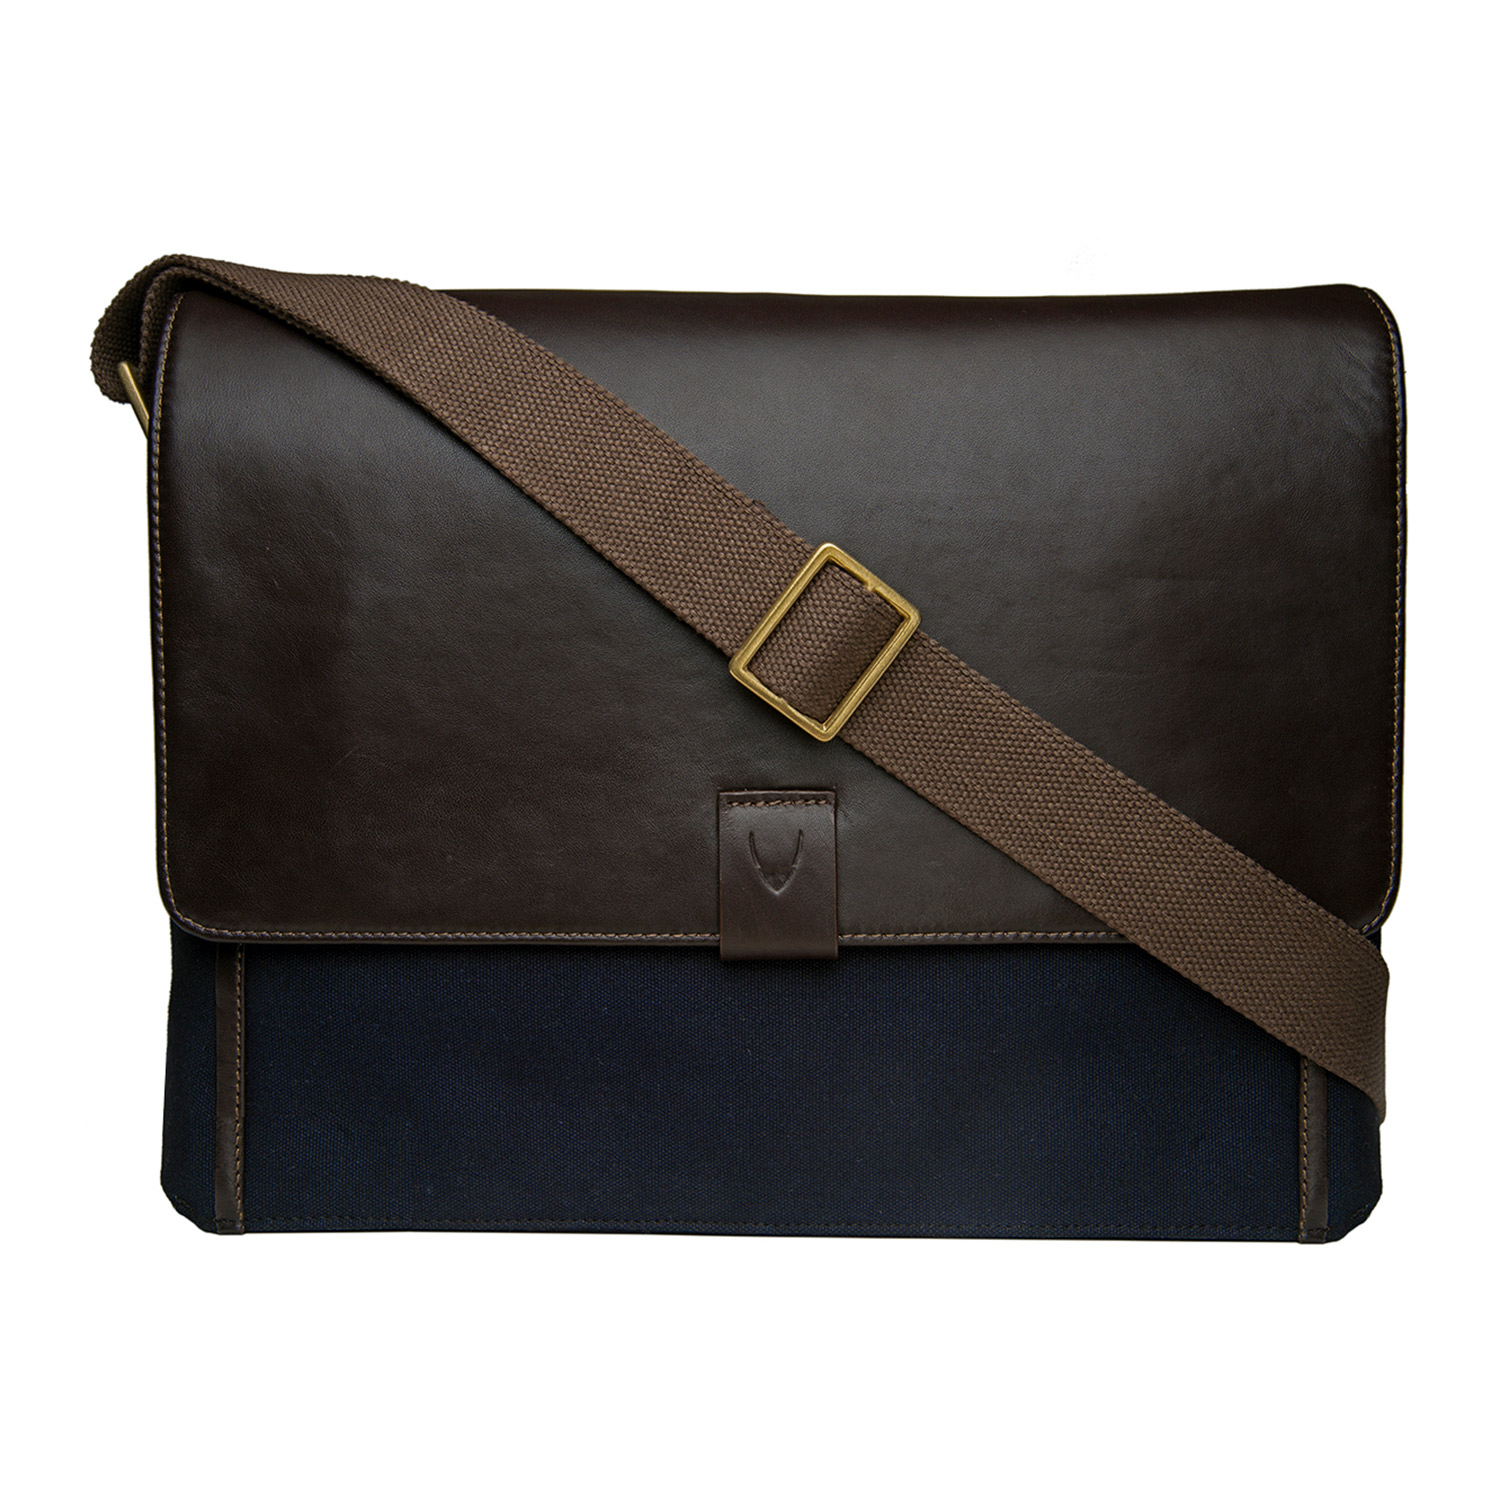 26061d5974 Aiden Canvas + Leather Laptop Messenger Bag    Blue + Brown - HiDesign -  Touch of Modern